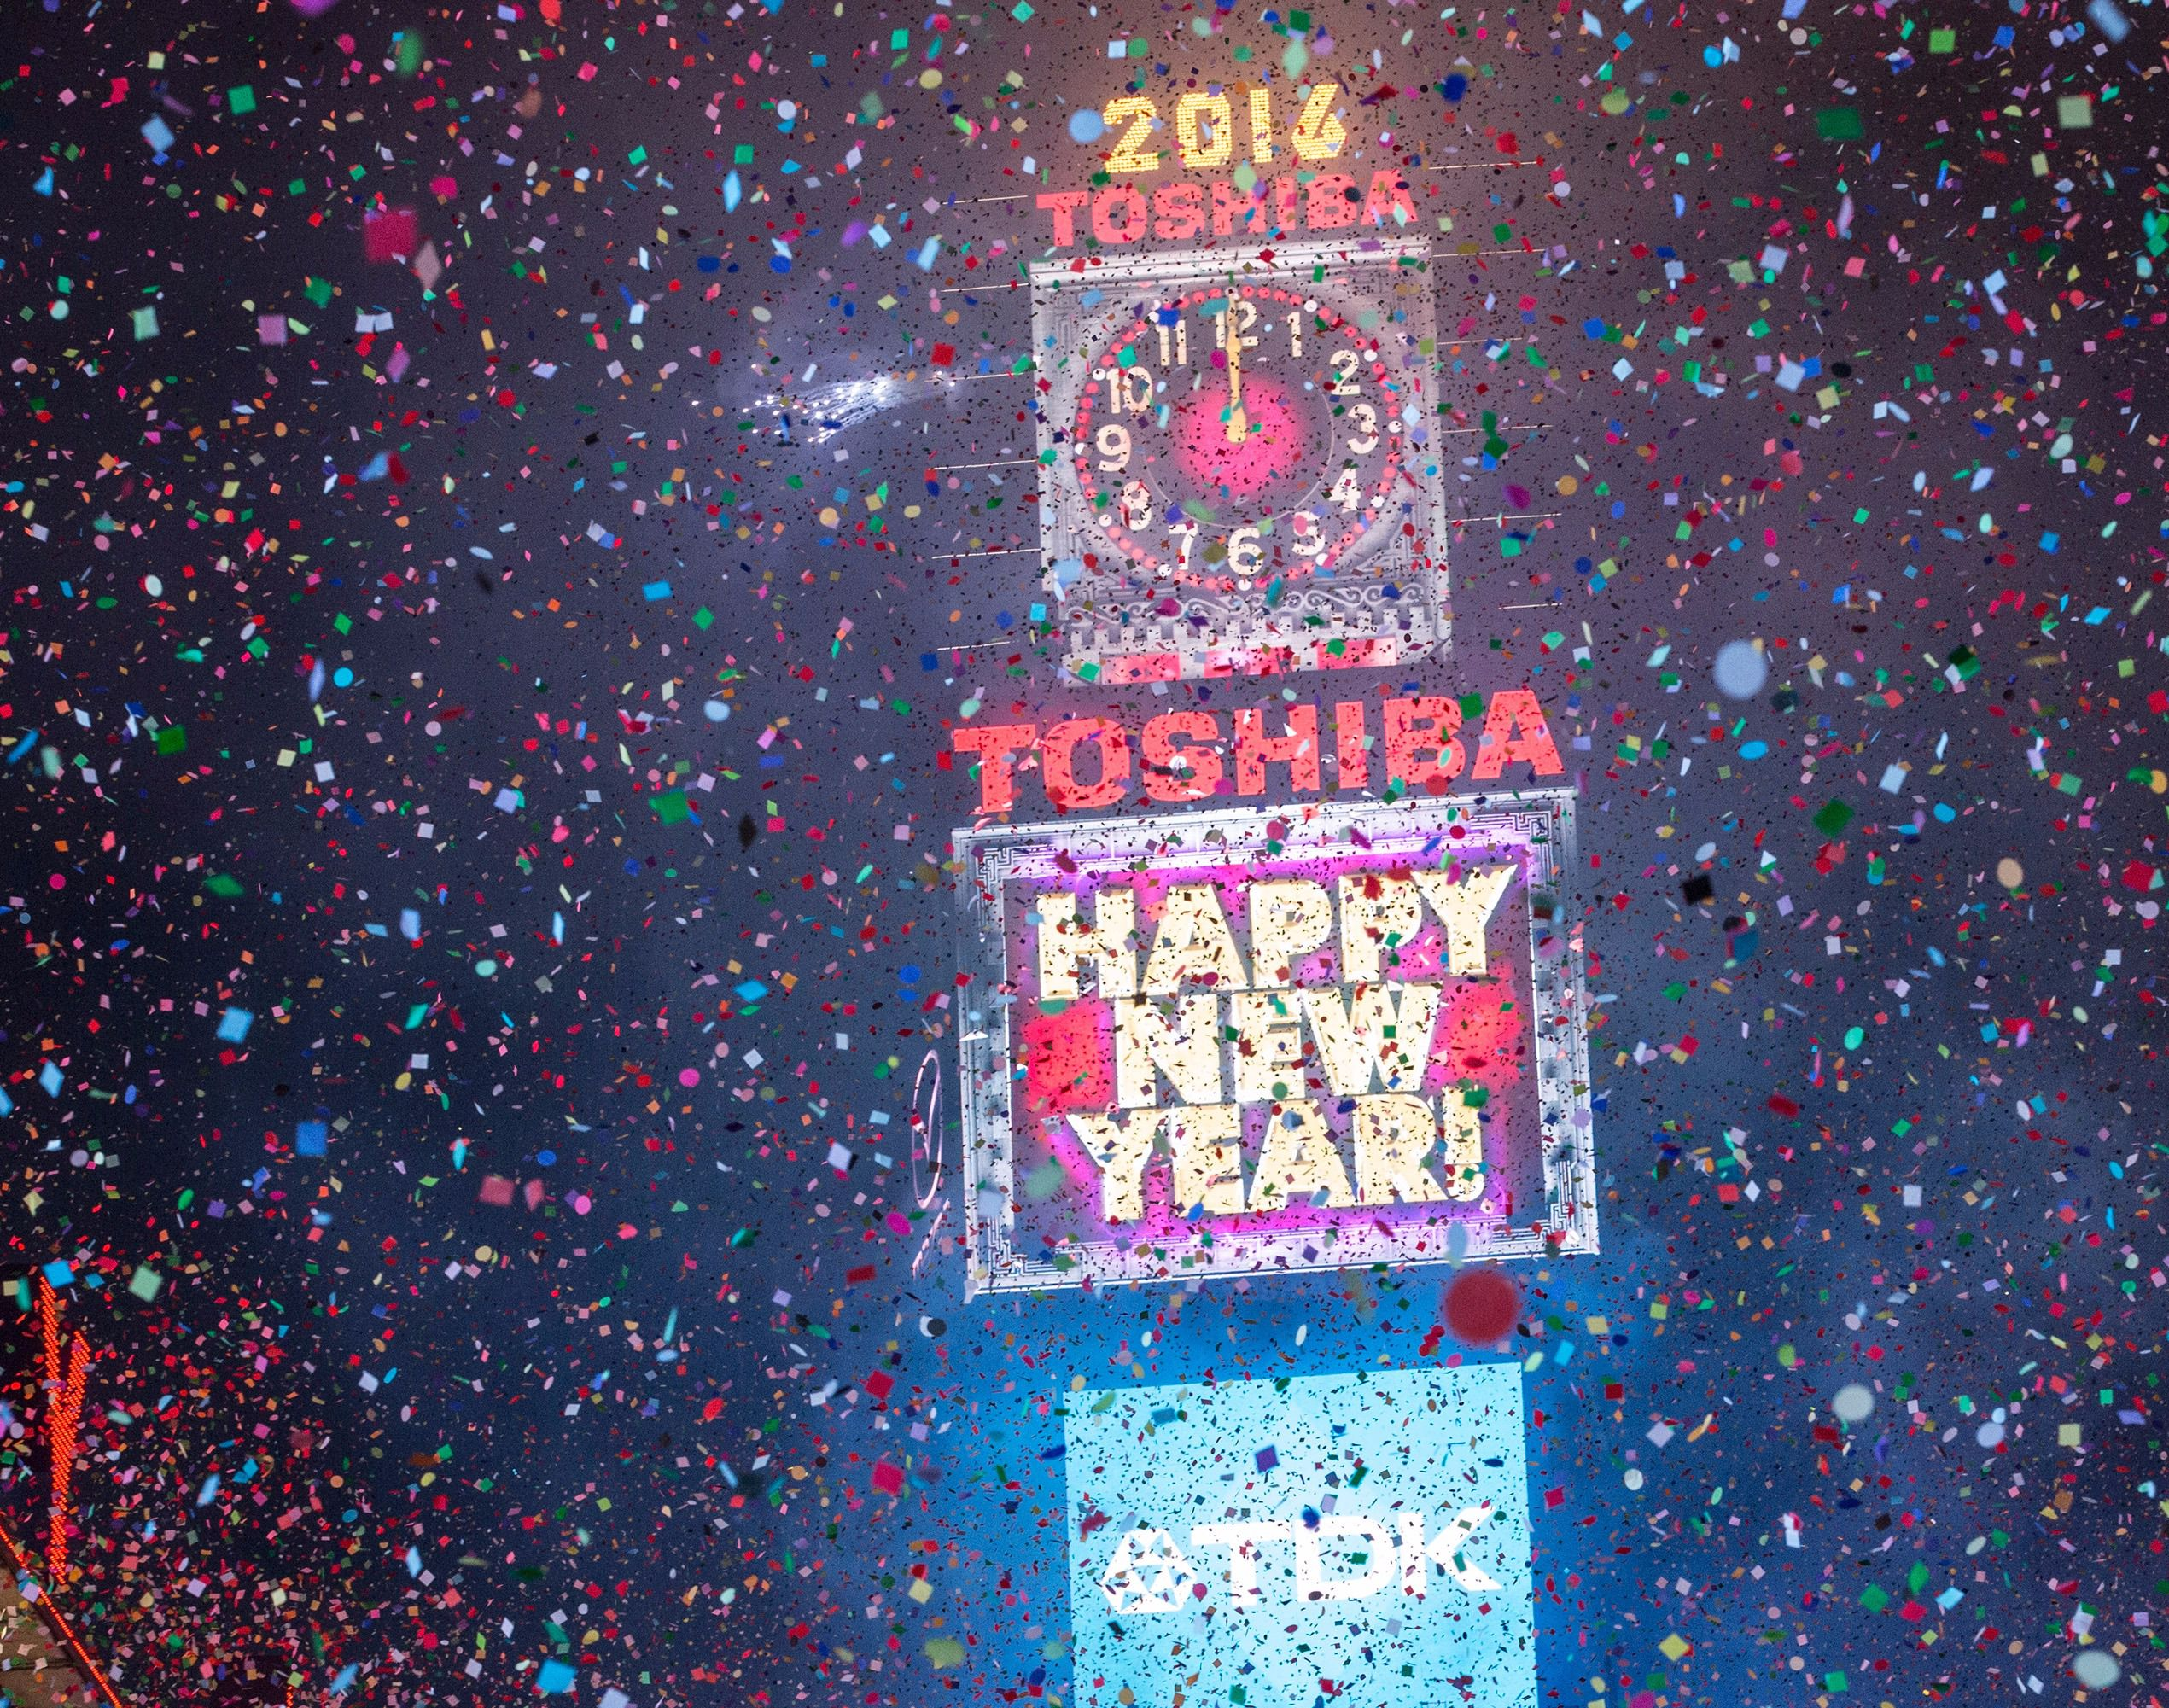 2016 New Year's Eve